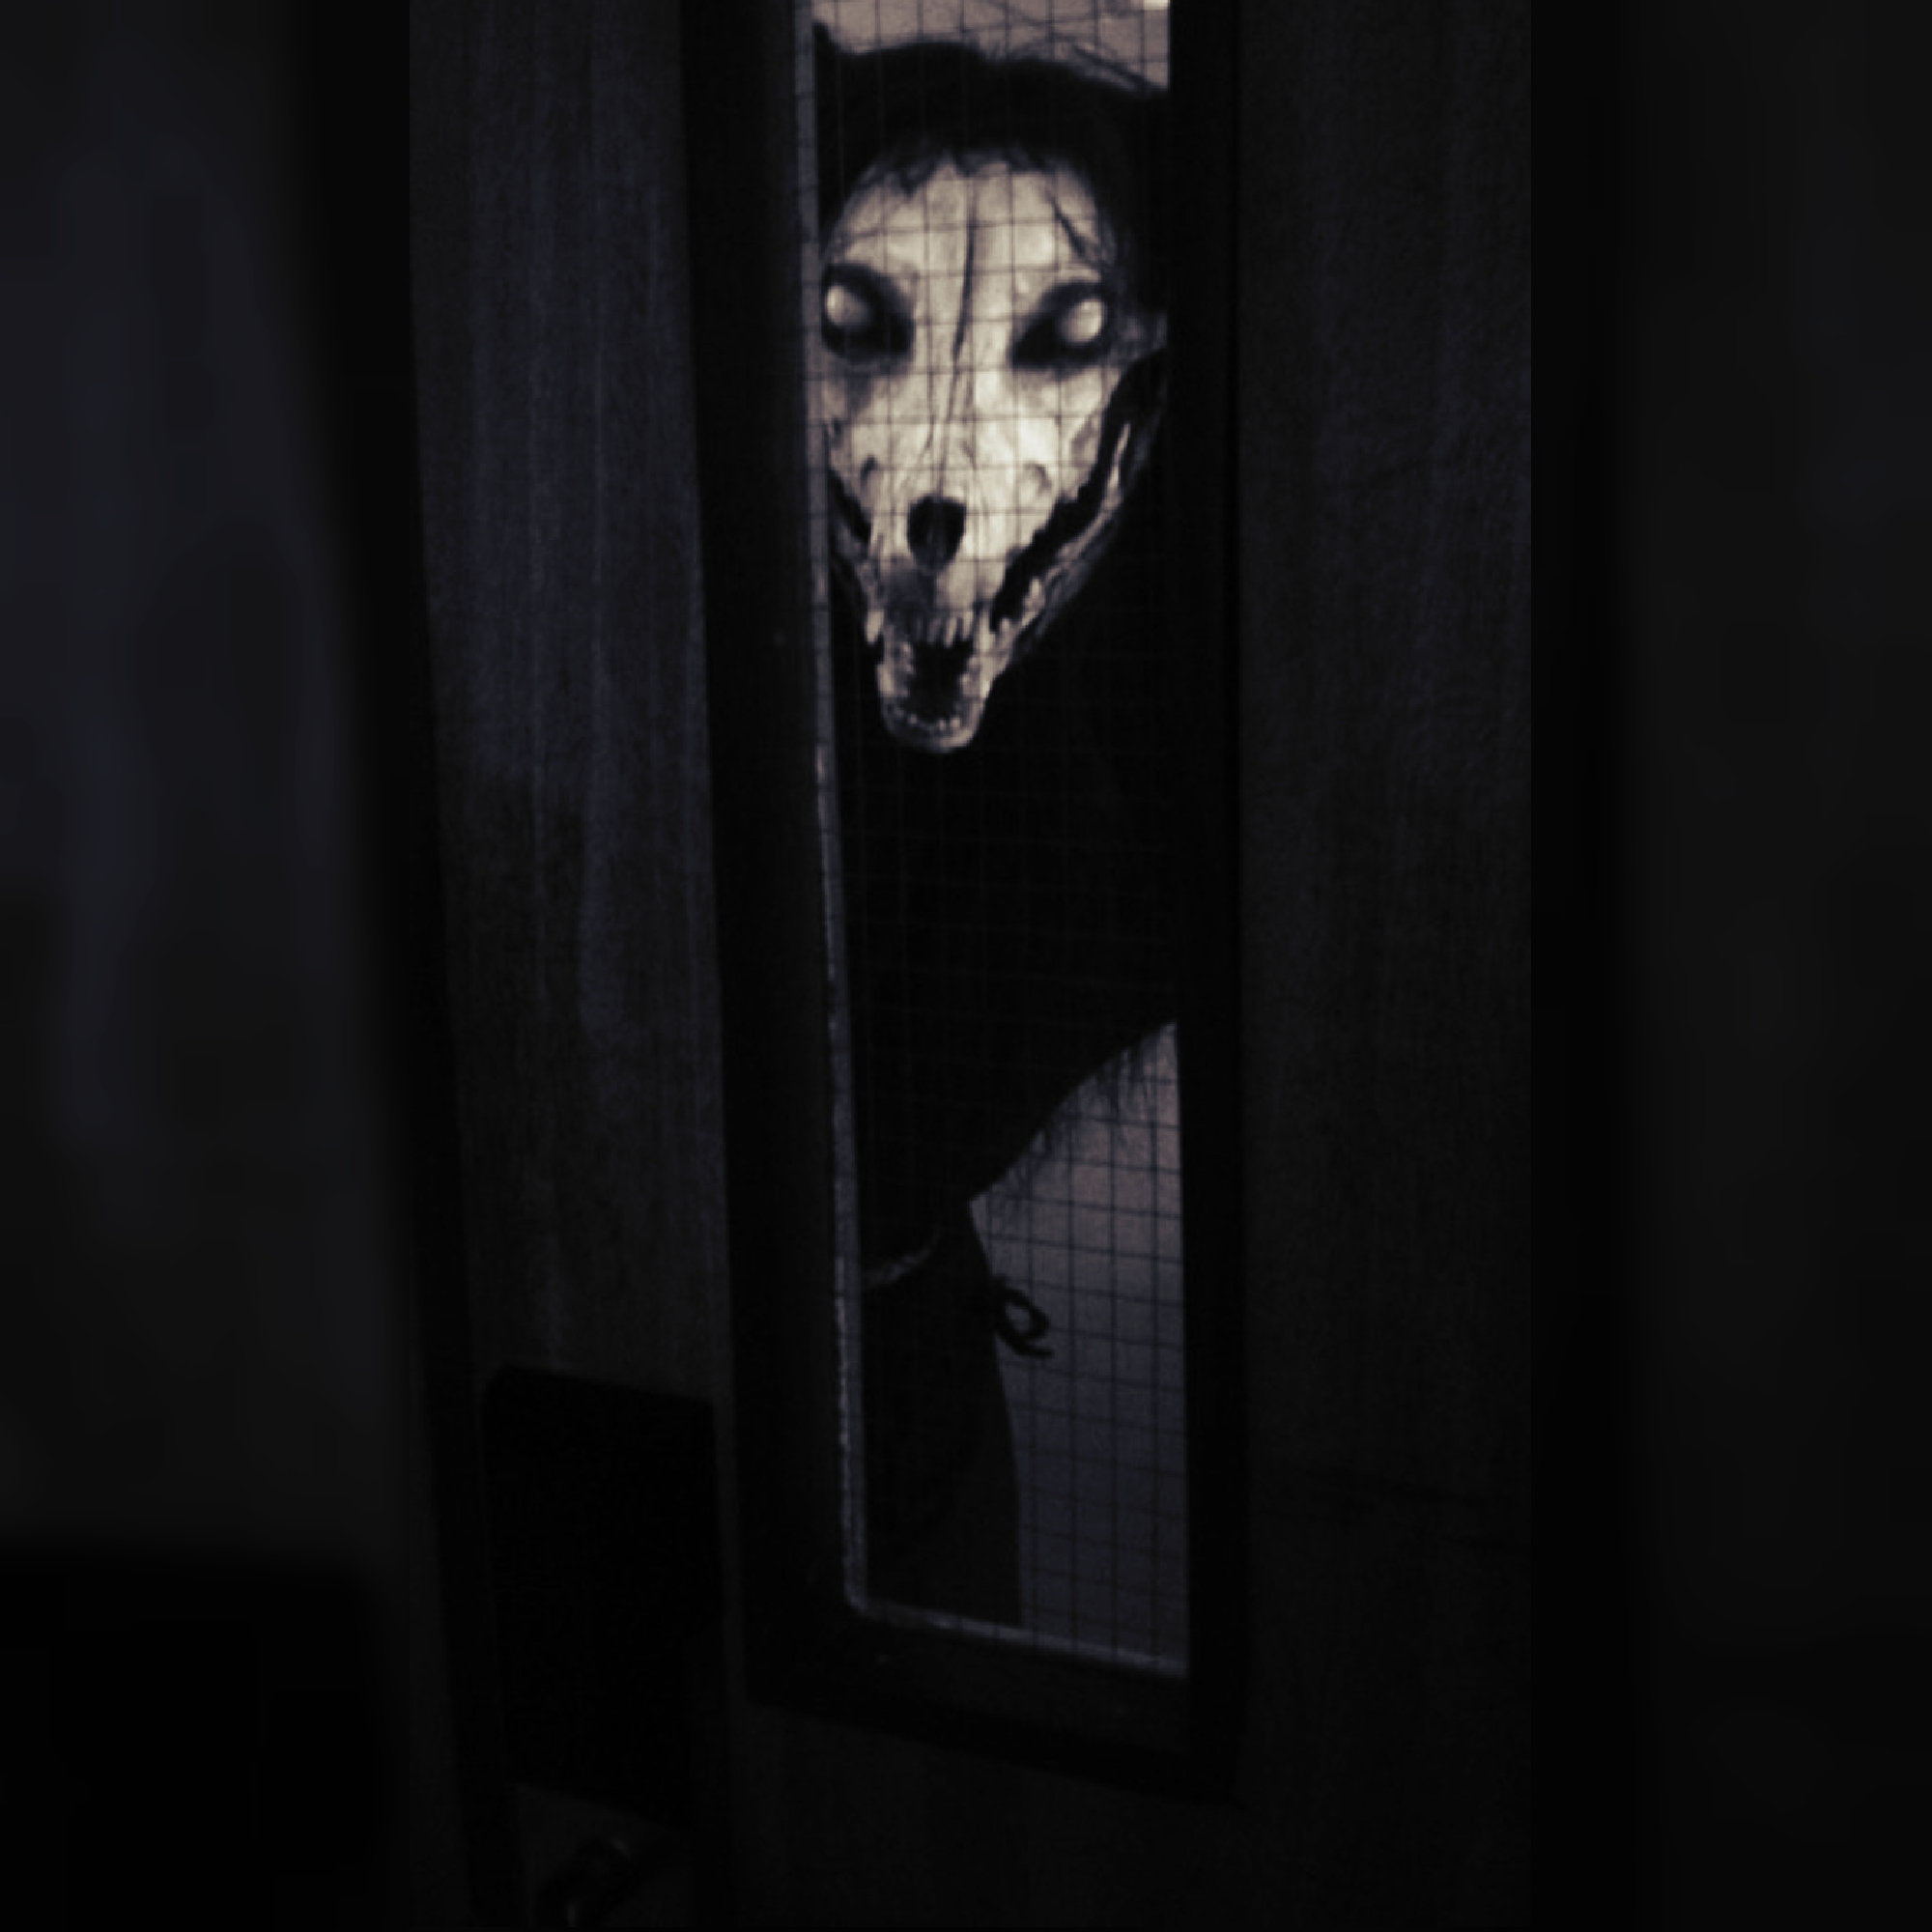 SCP-1471-A